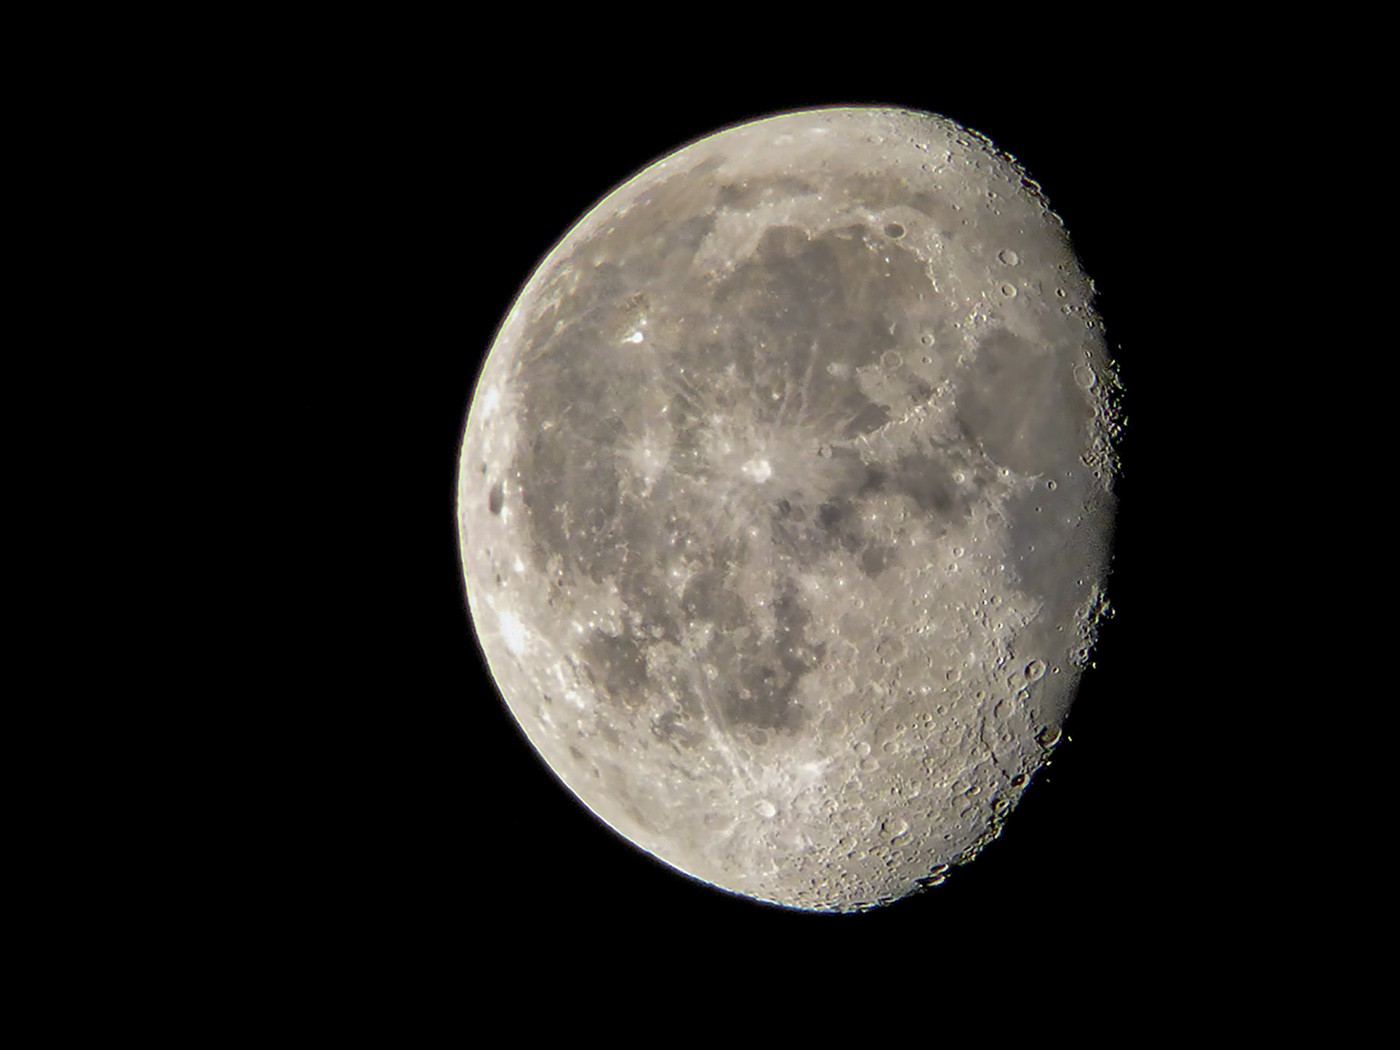 Waning gibbous 20th August 2019